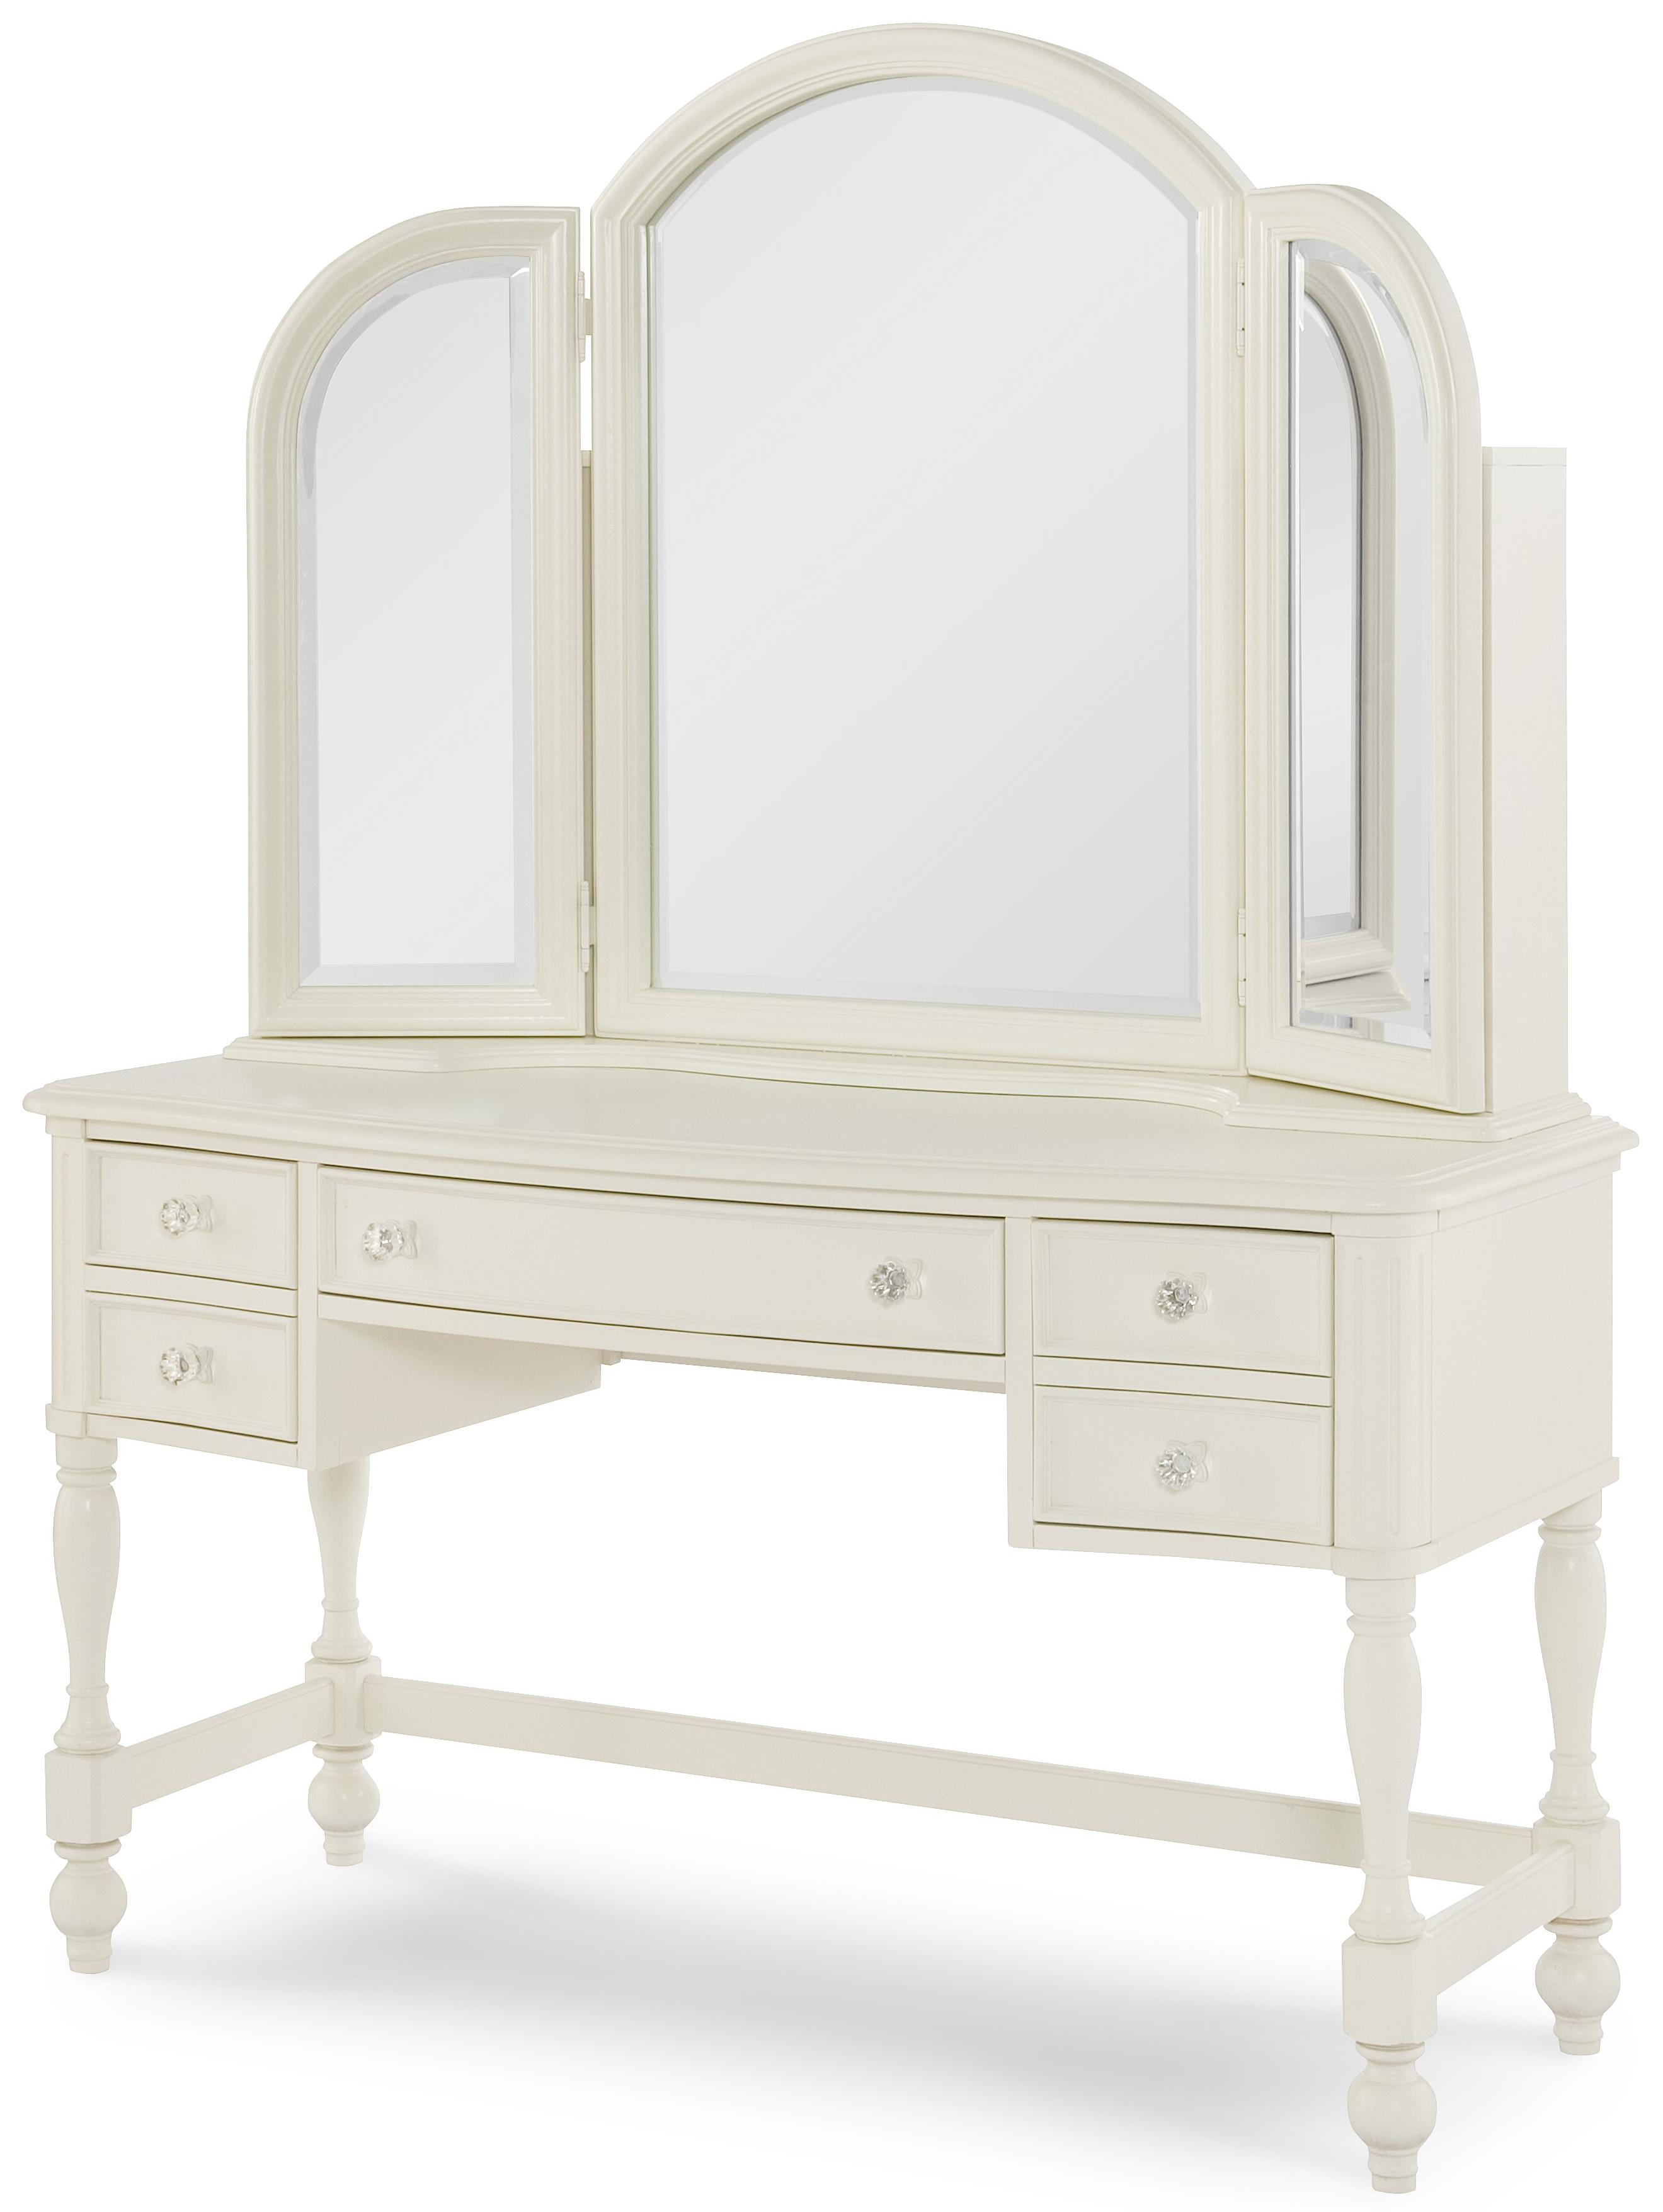 Exceptionnel Desk + Vanity Mirror